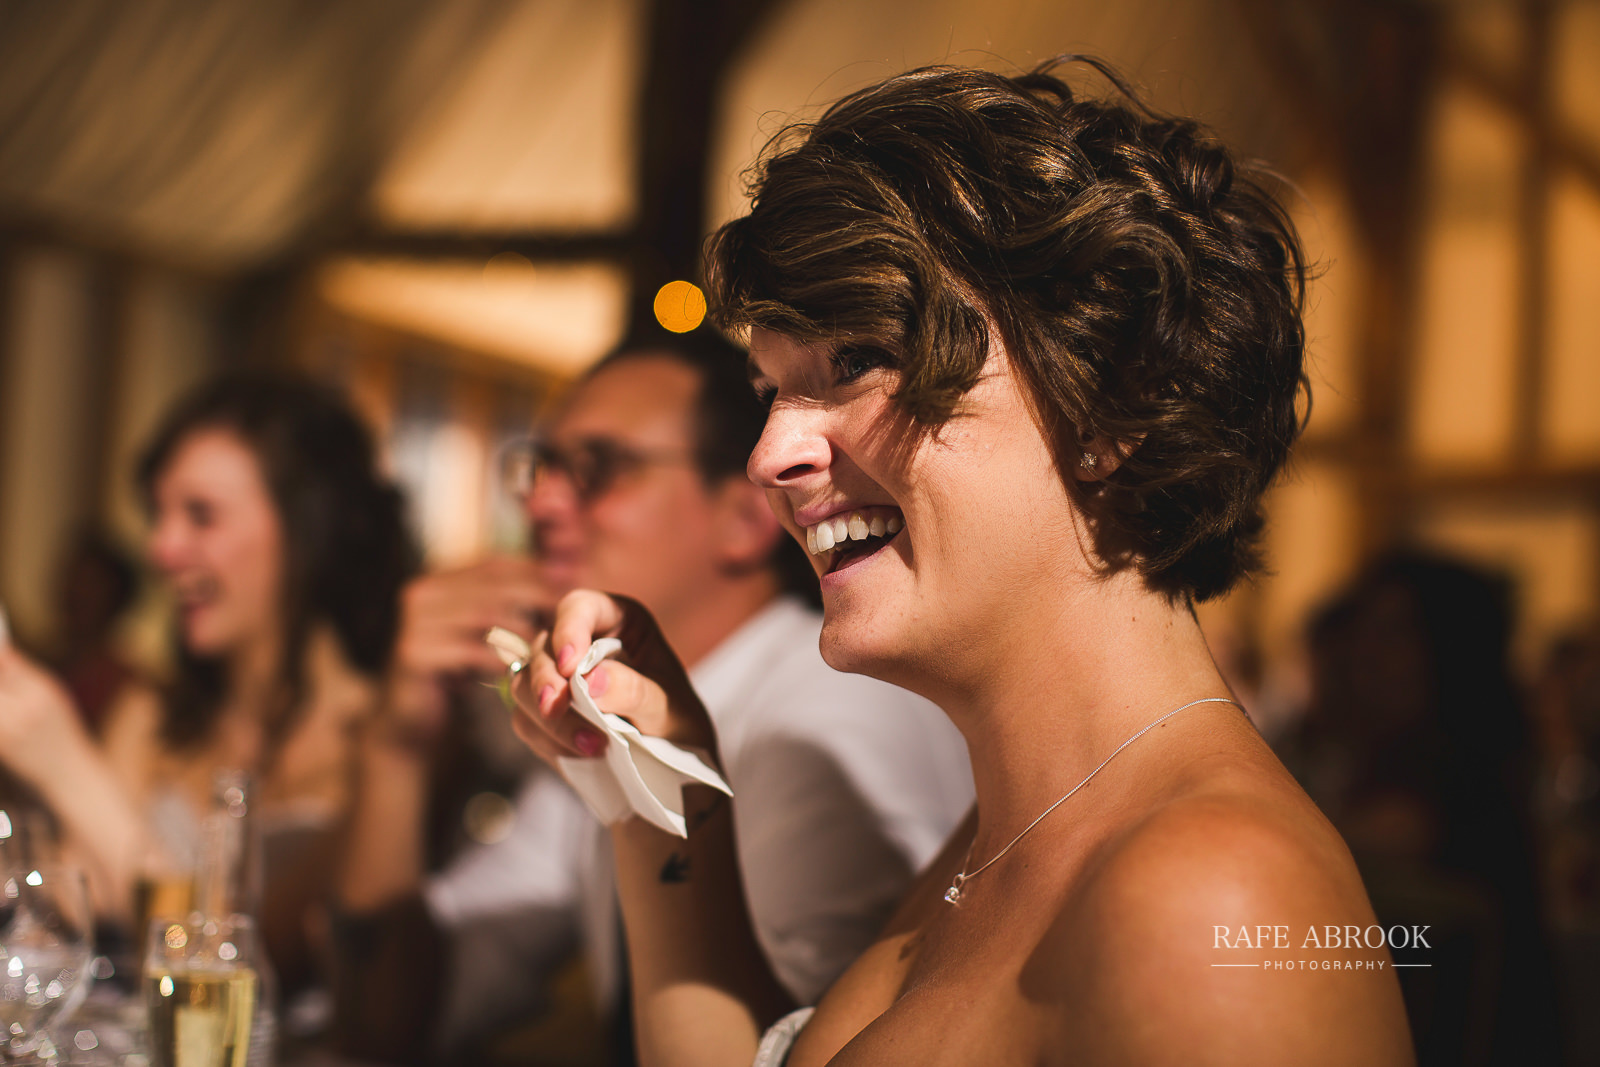 south farm wedding royston hertfordshire wedding photographer rafe abrook photography-1841.jpg